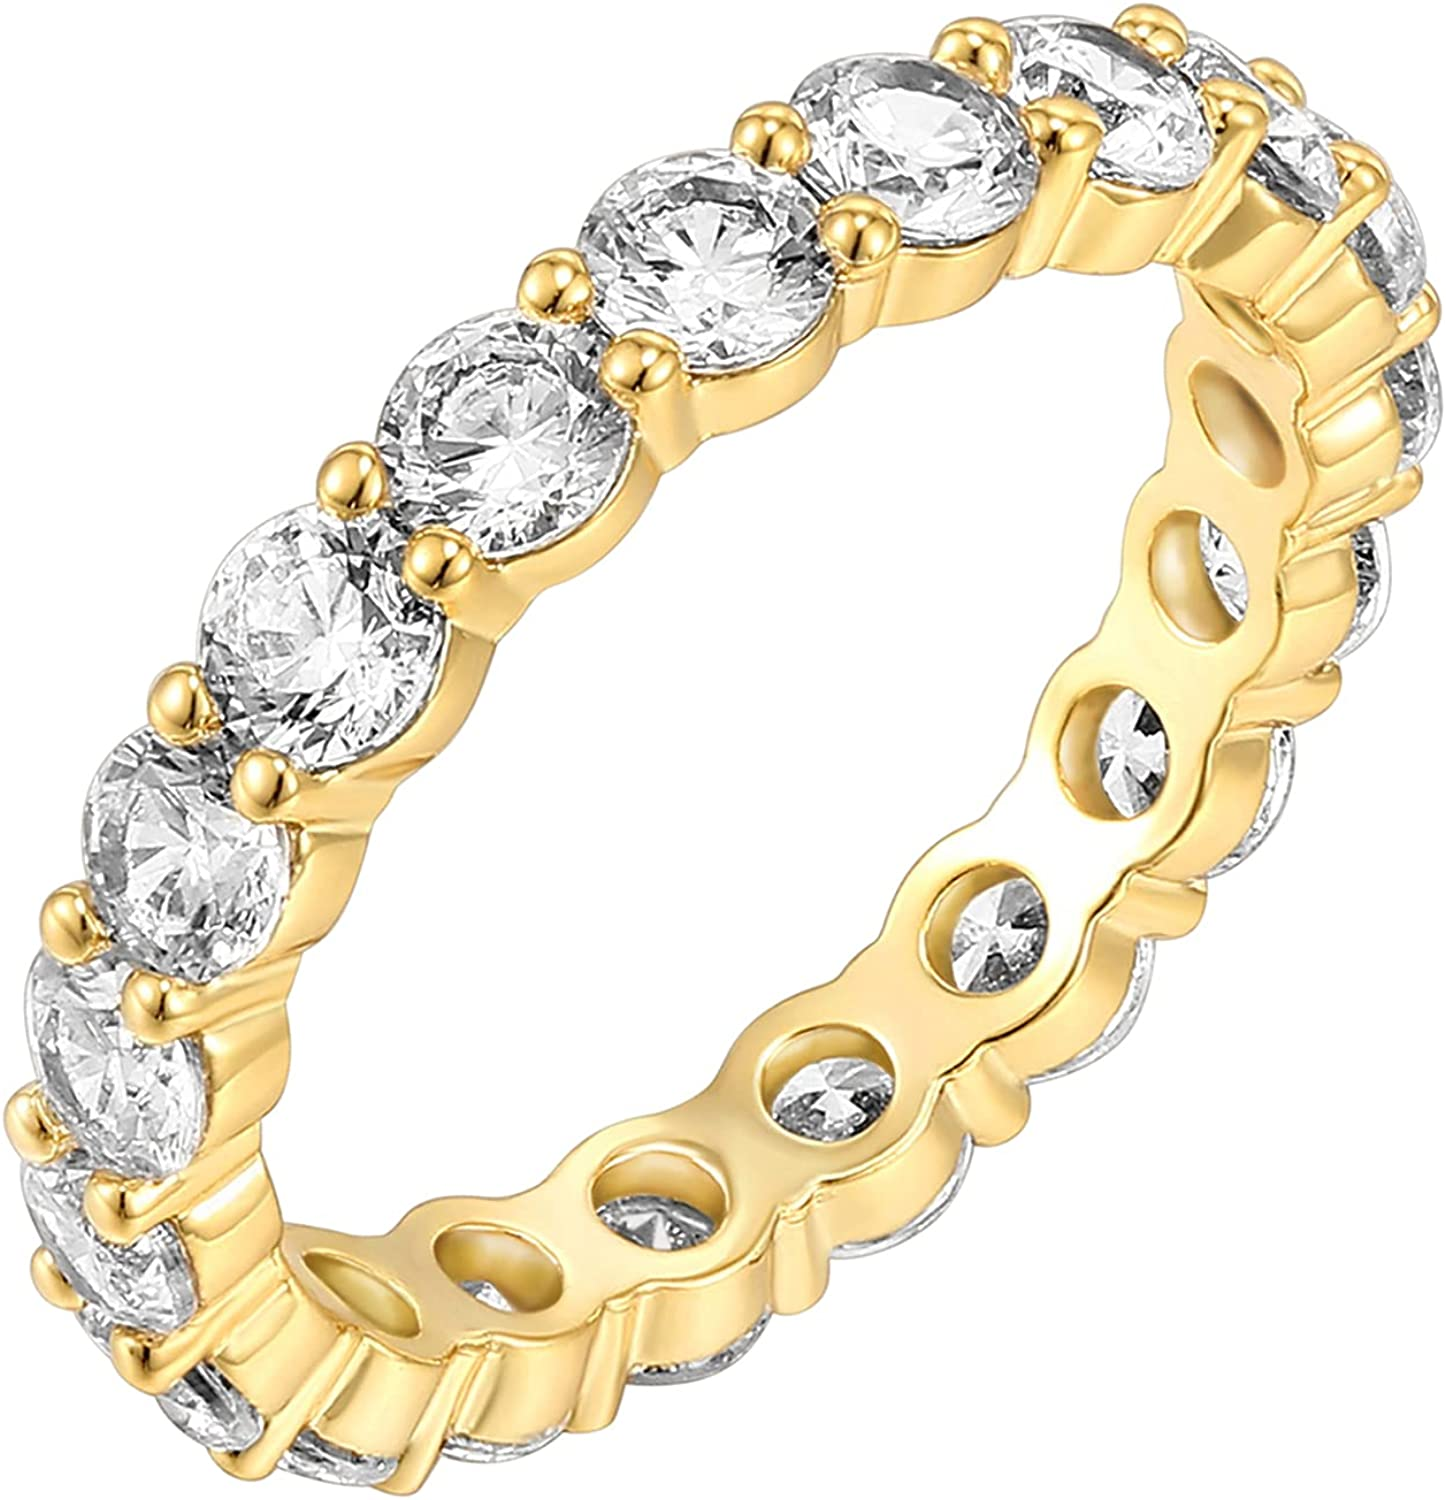 PAVOI 14K Gold Plated Cubic Zirconia Rings | 3.0mm Eternity Bands | Gold Rings for Women